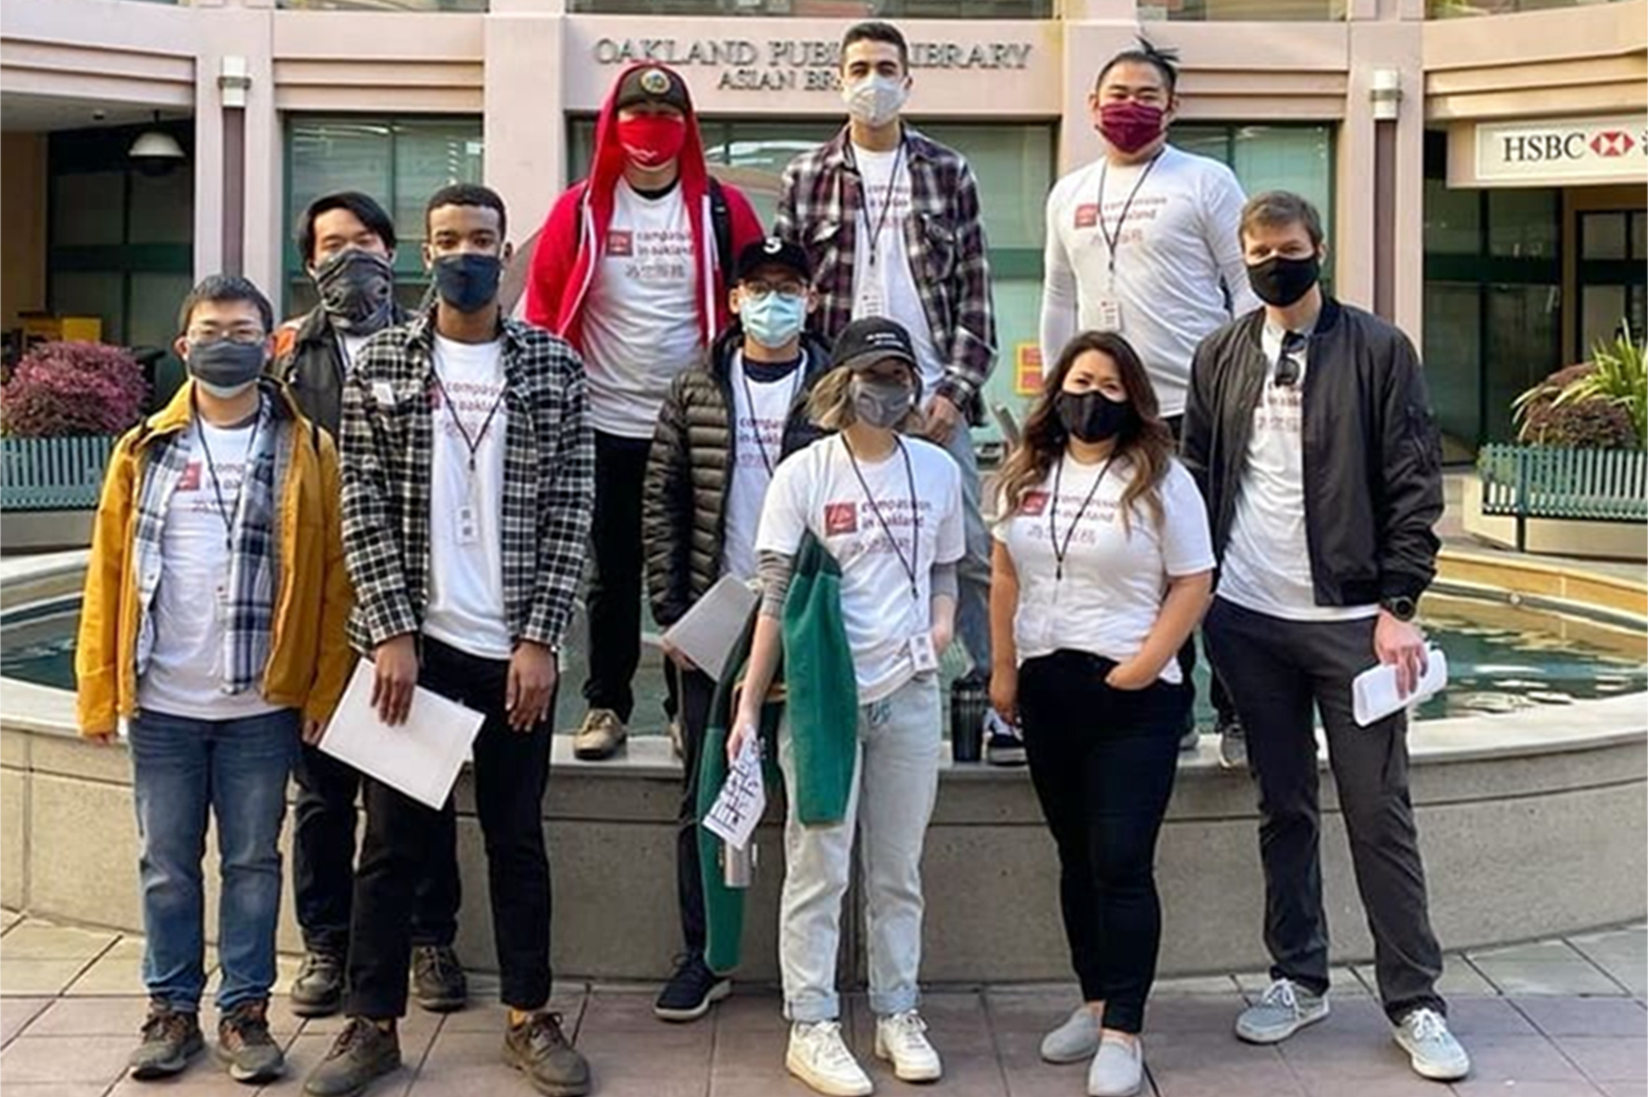 """""""Asians with Attitudes"""" group seeks to combat rise in hate crimes 3/5/21"""